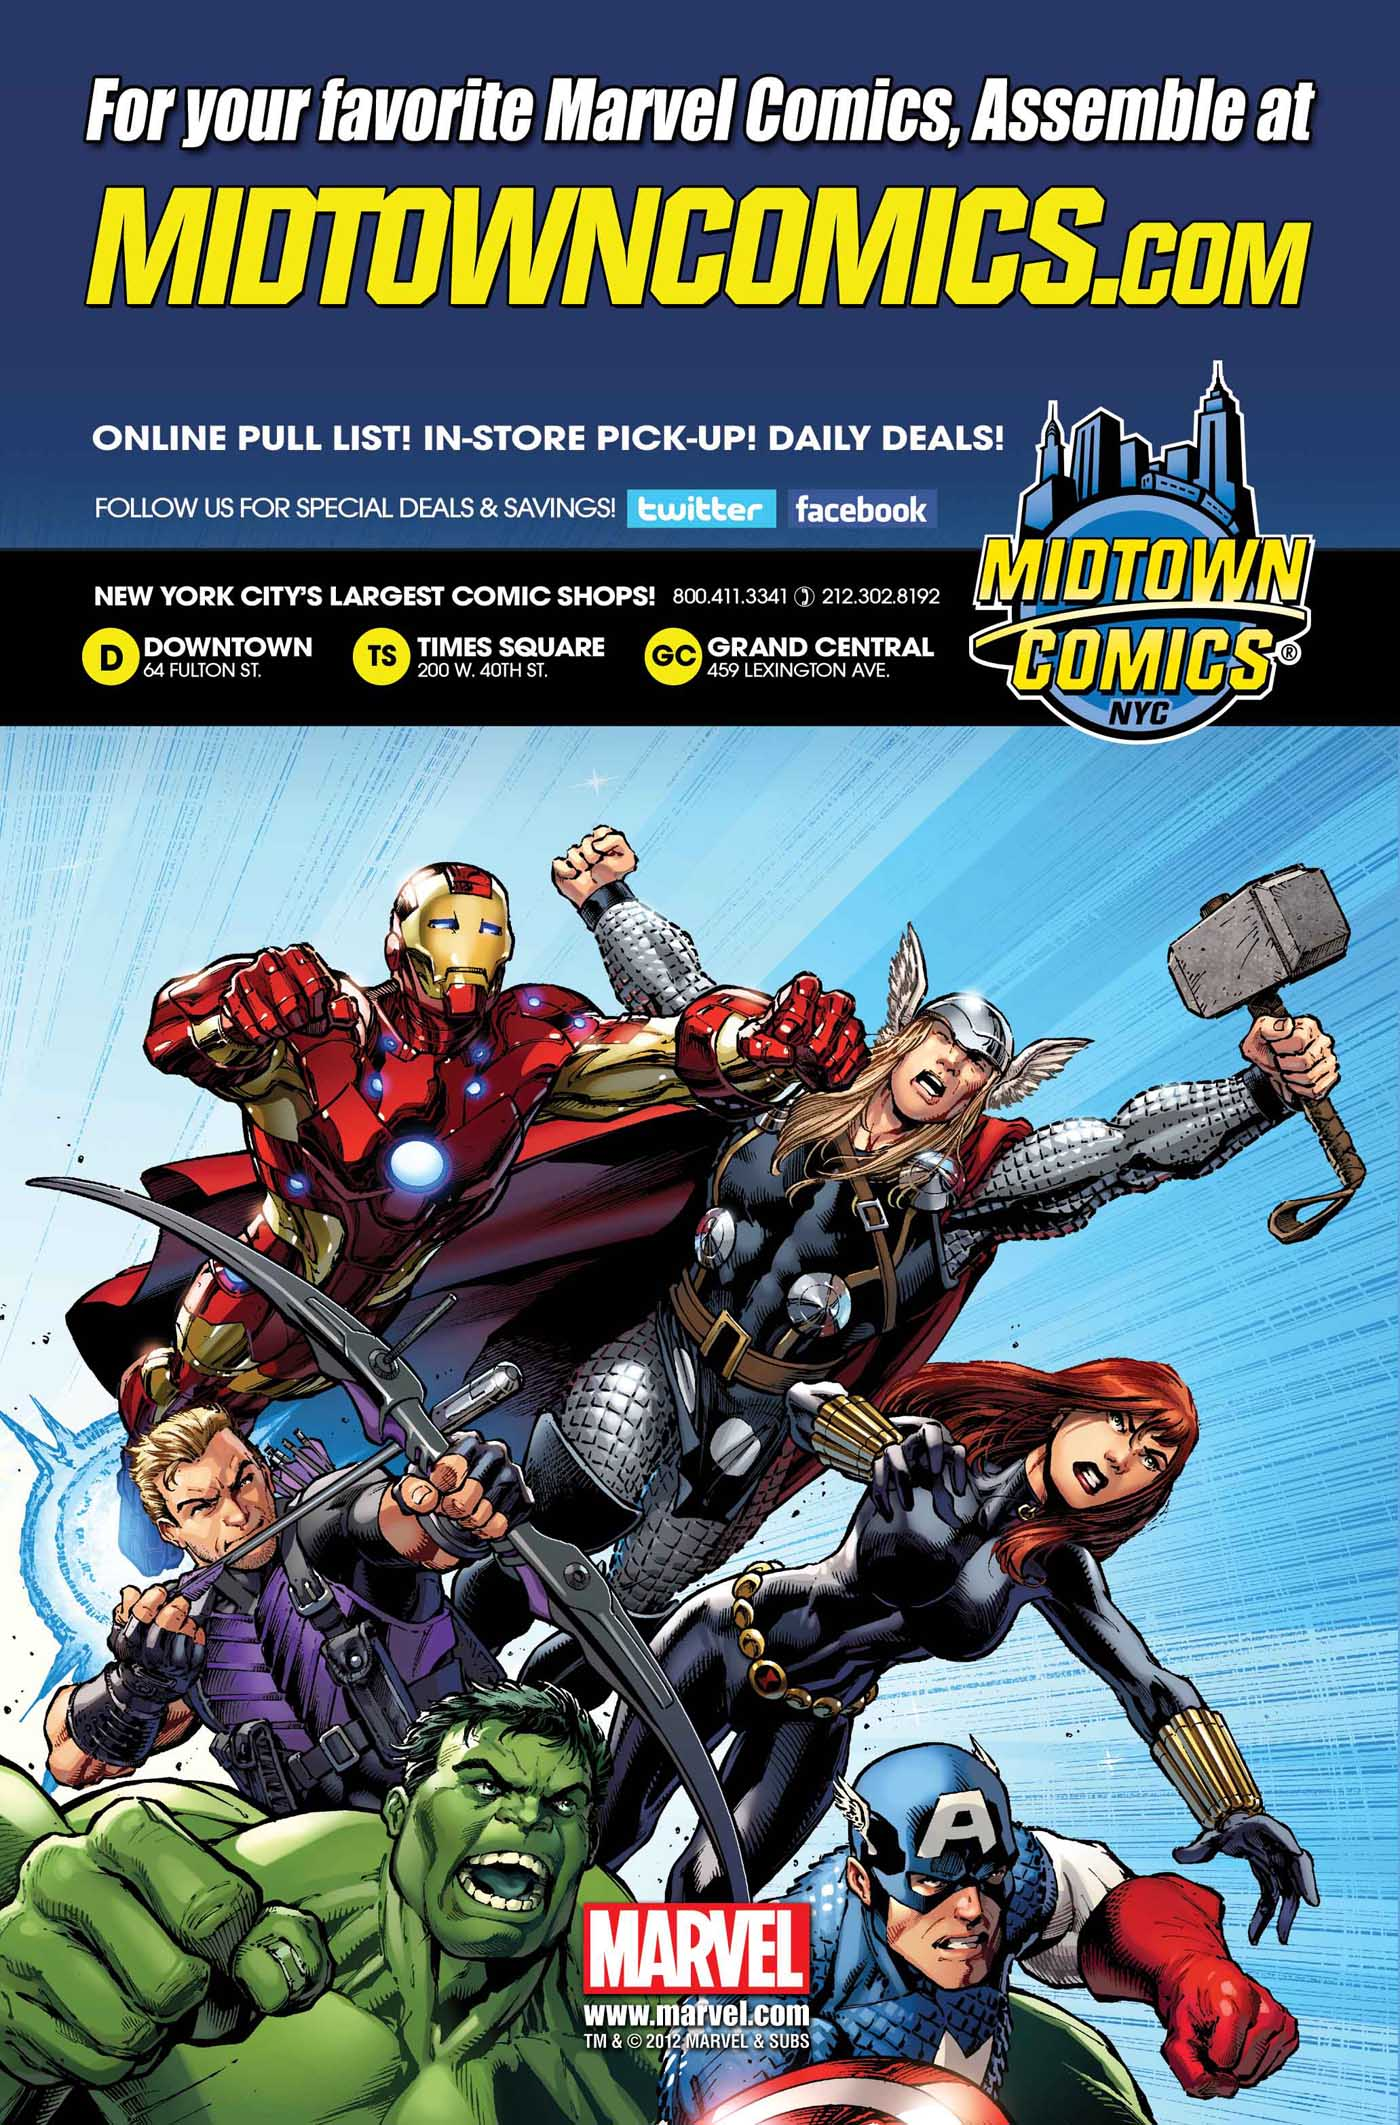 ... Assemble #1: The Midtown Comics Exclusive Covers Â« Midtown Comics